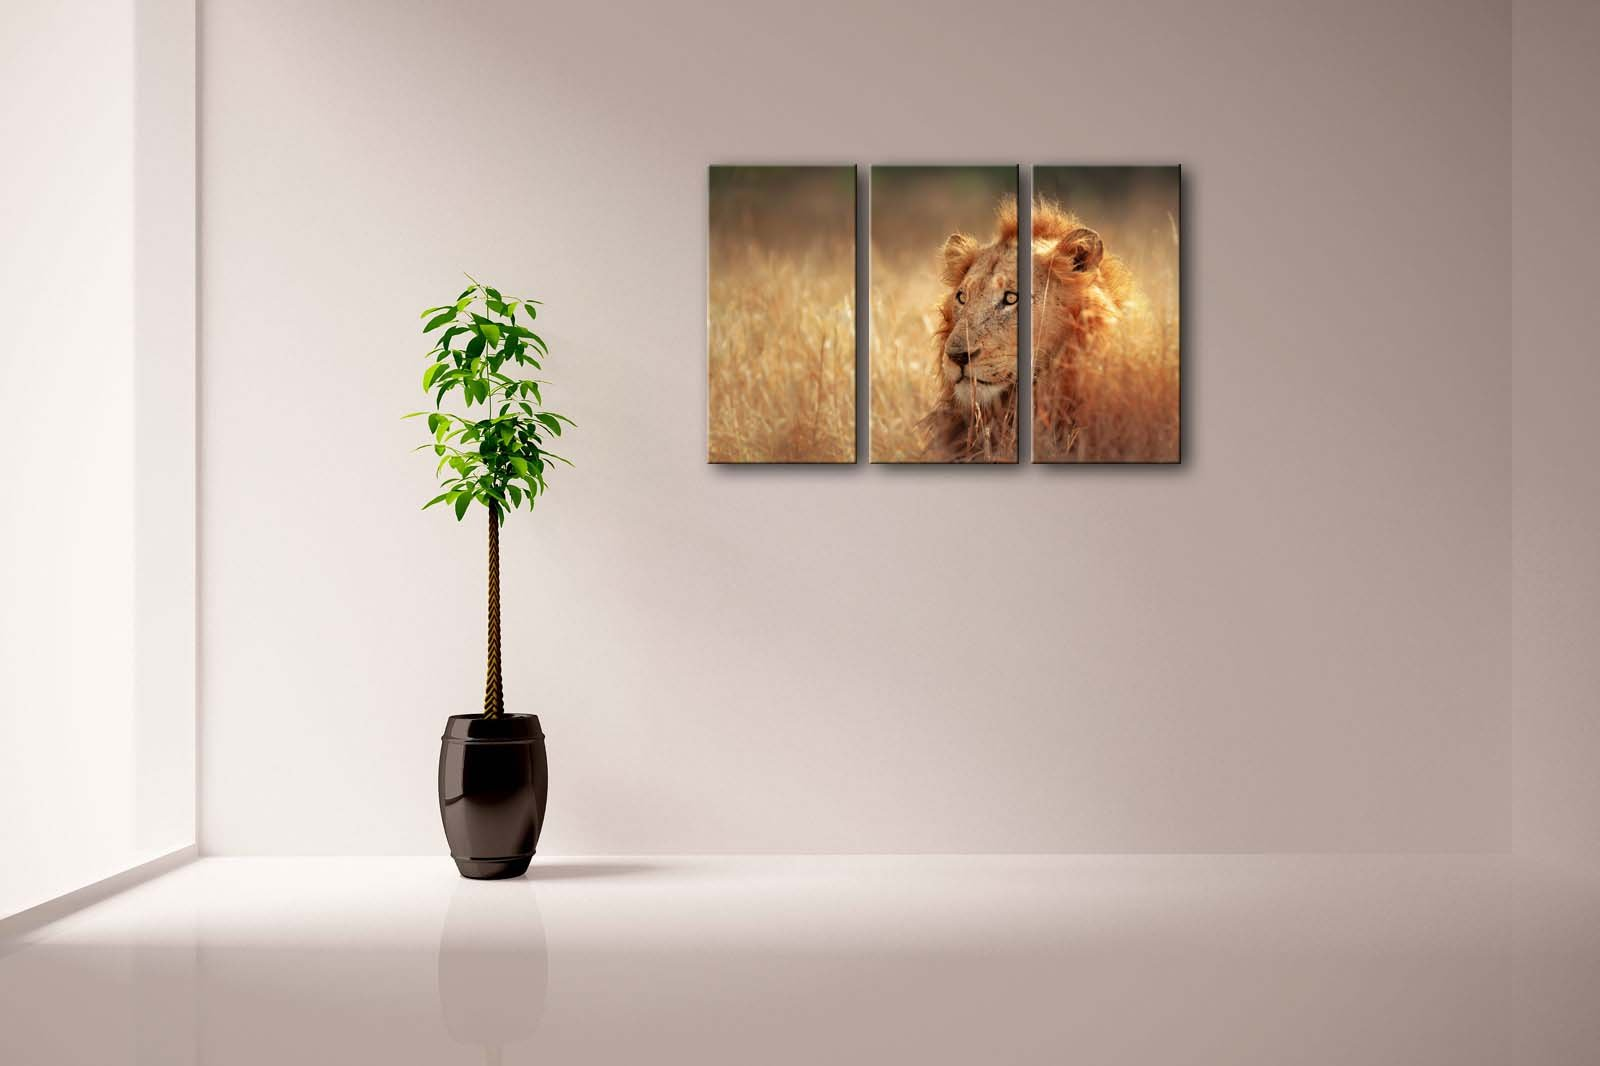 First Wall Art - 3 Panel Wall Art Big Male Lion Lying In Dense Grassland Kruger National Park South Africa Painting Pictures Print On Canvas Animal The Picture For Home Modern Decoration piece (Stretched By Wooden Frame,Ready To Hang)